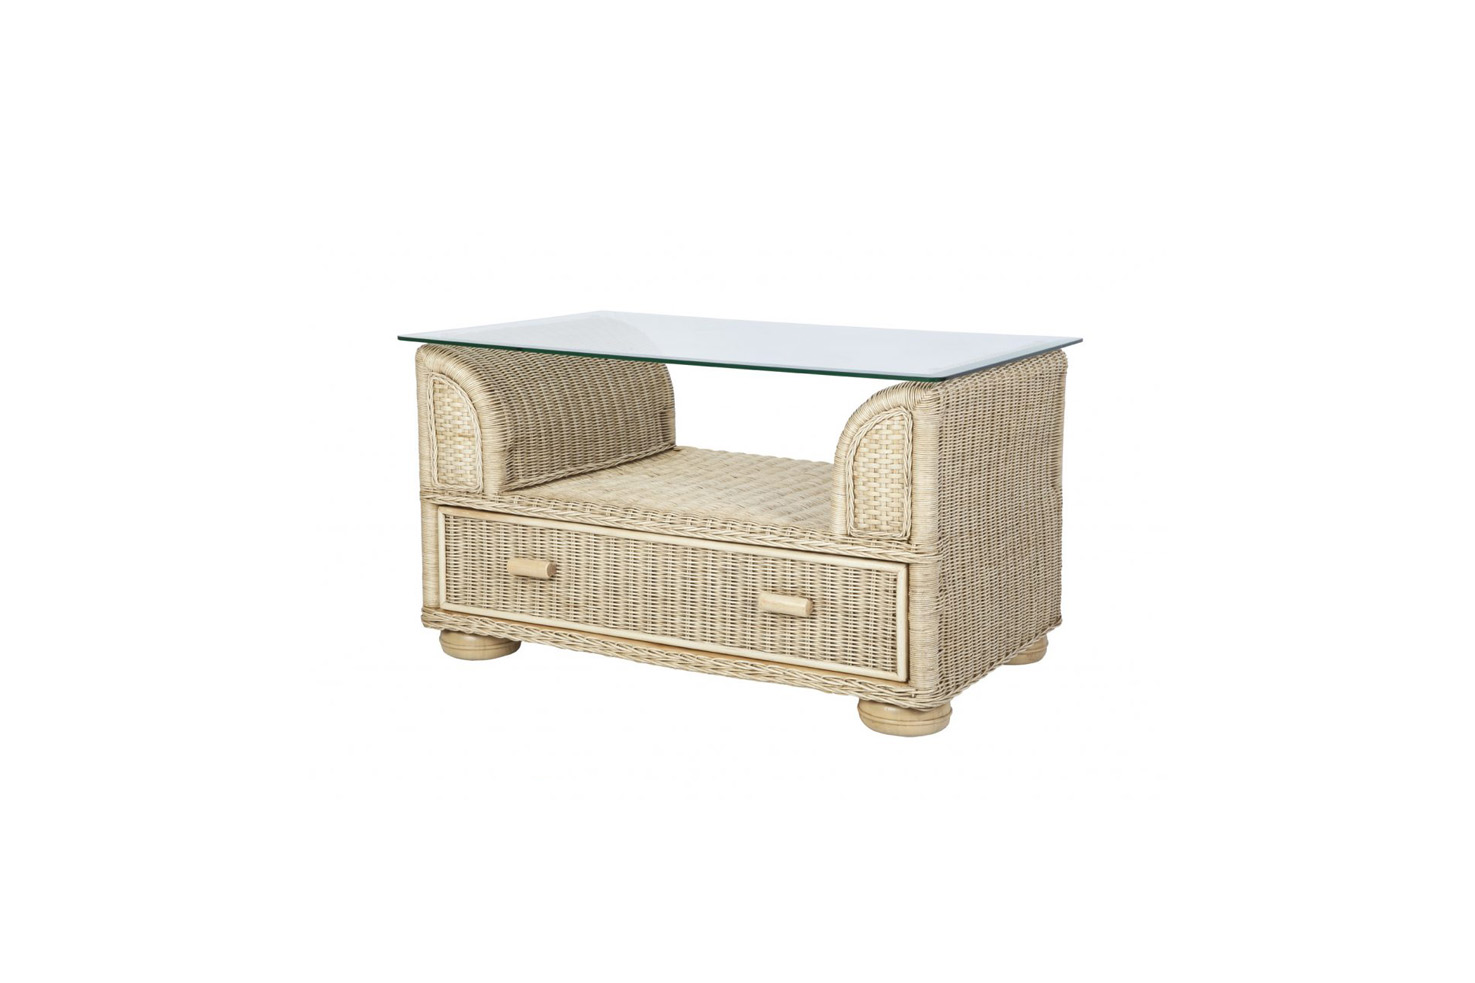 Brook wicker cane rattan conservatory furniture coffee table for Cane wicker furniture